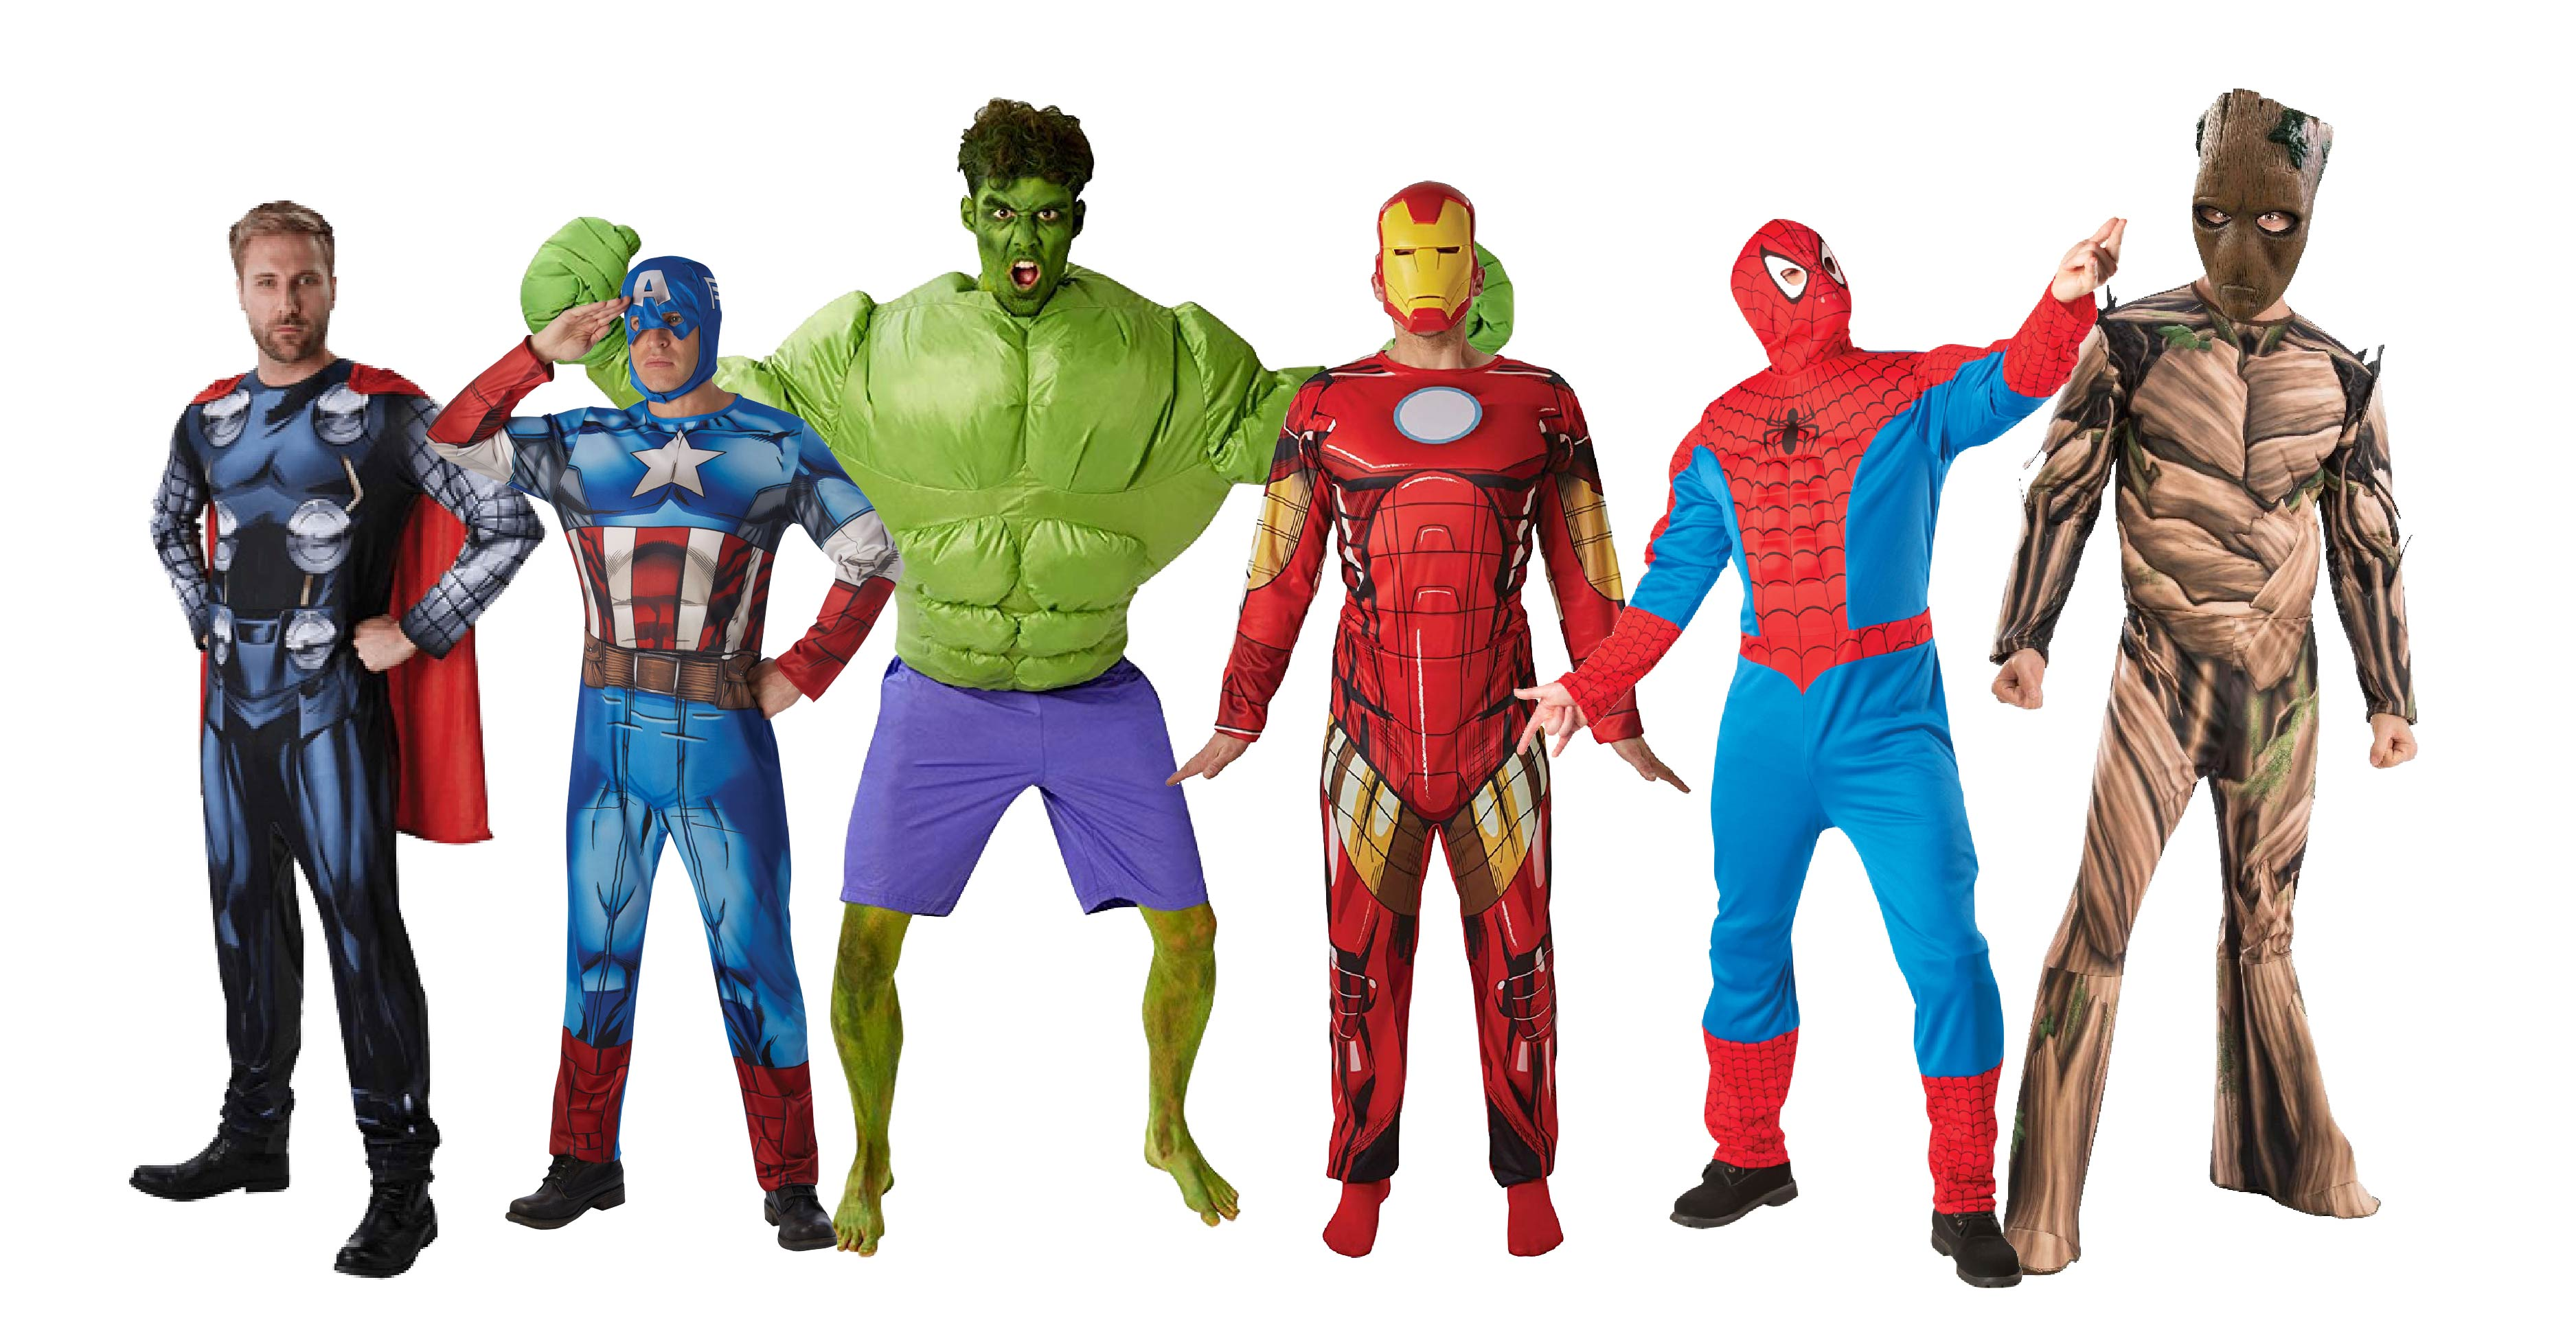 Group of people wearing The Avengers superhero costumes by Marvel.